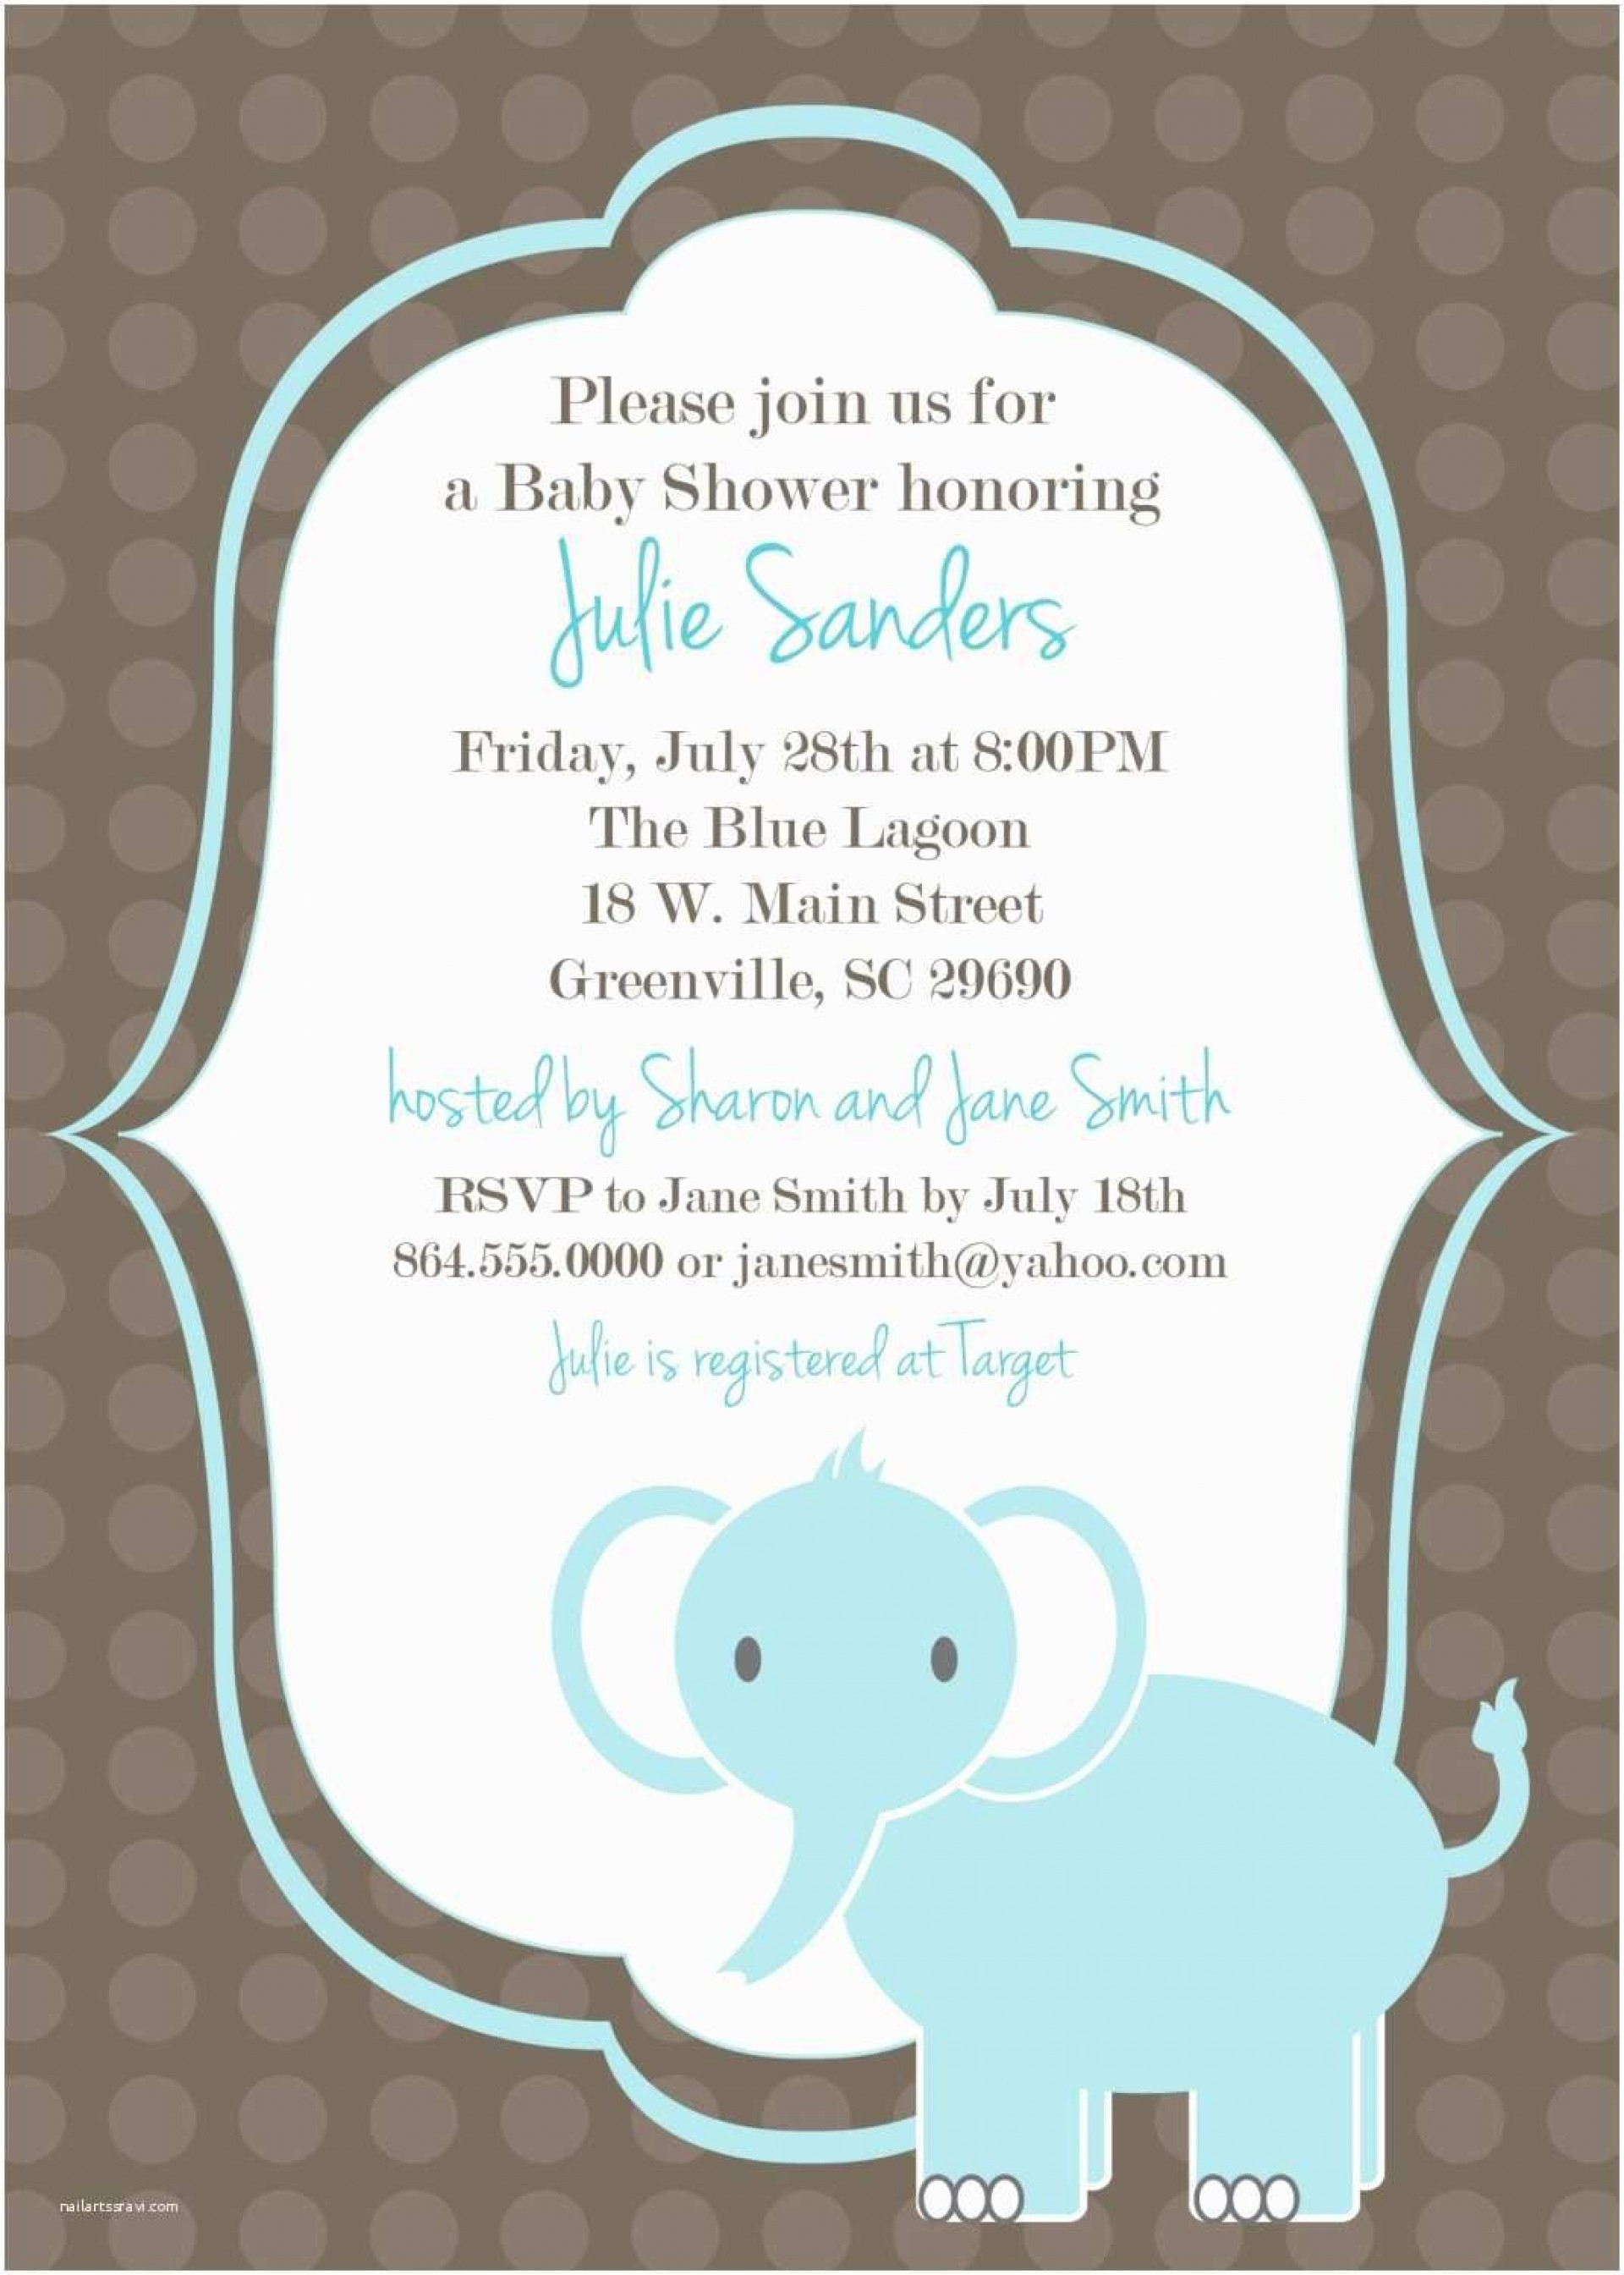 002 Archaicawful Baby Shower Invitation Template Word Photo  Office Wording Sample Work Download1920